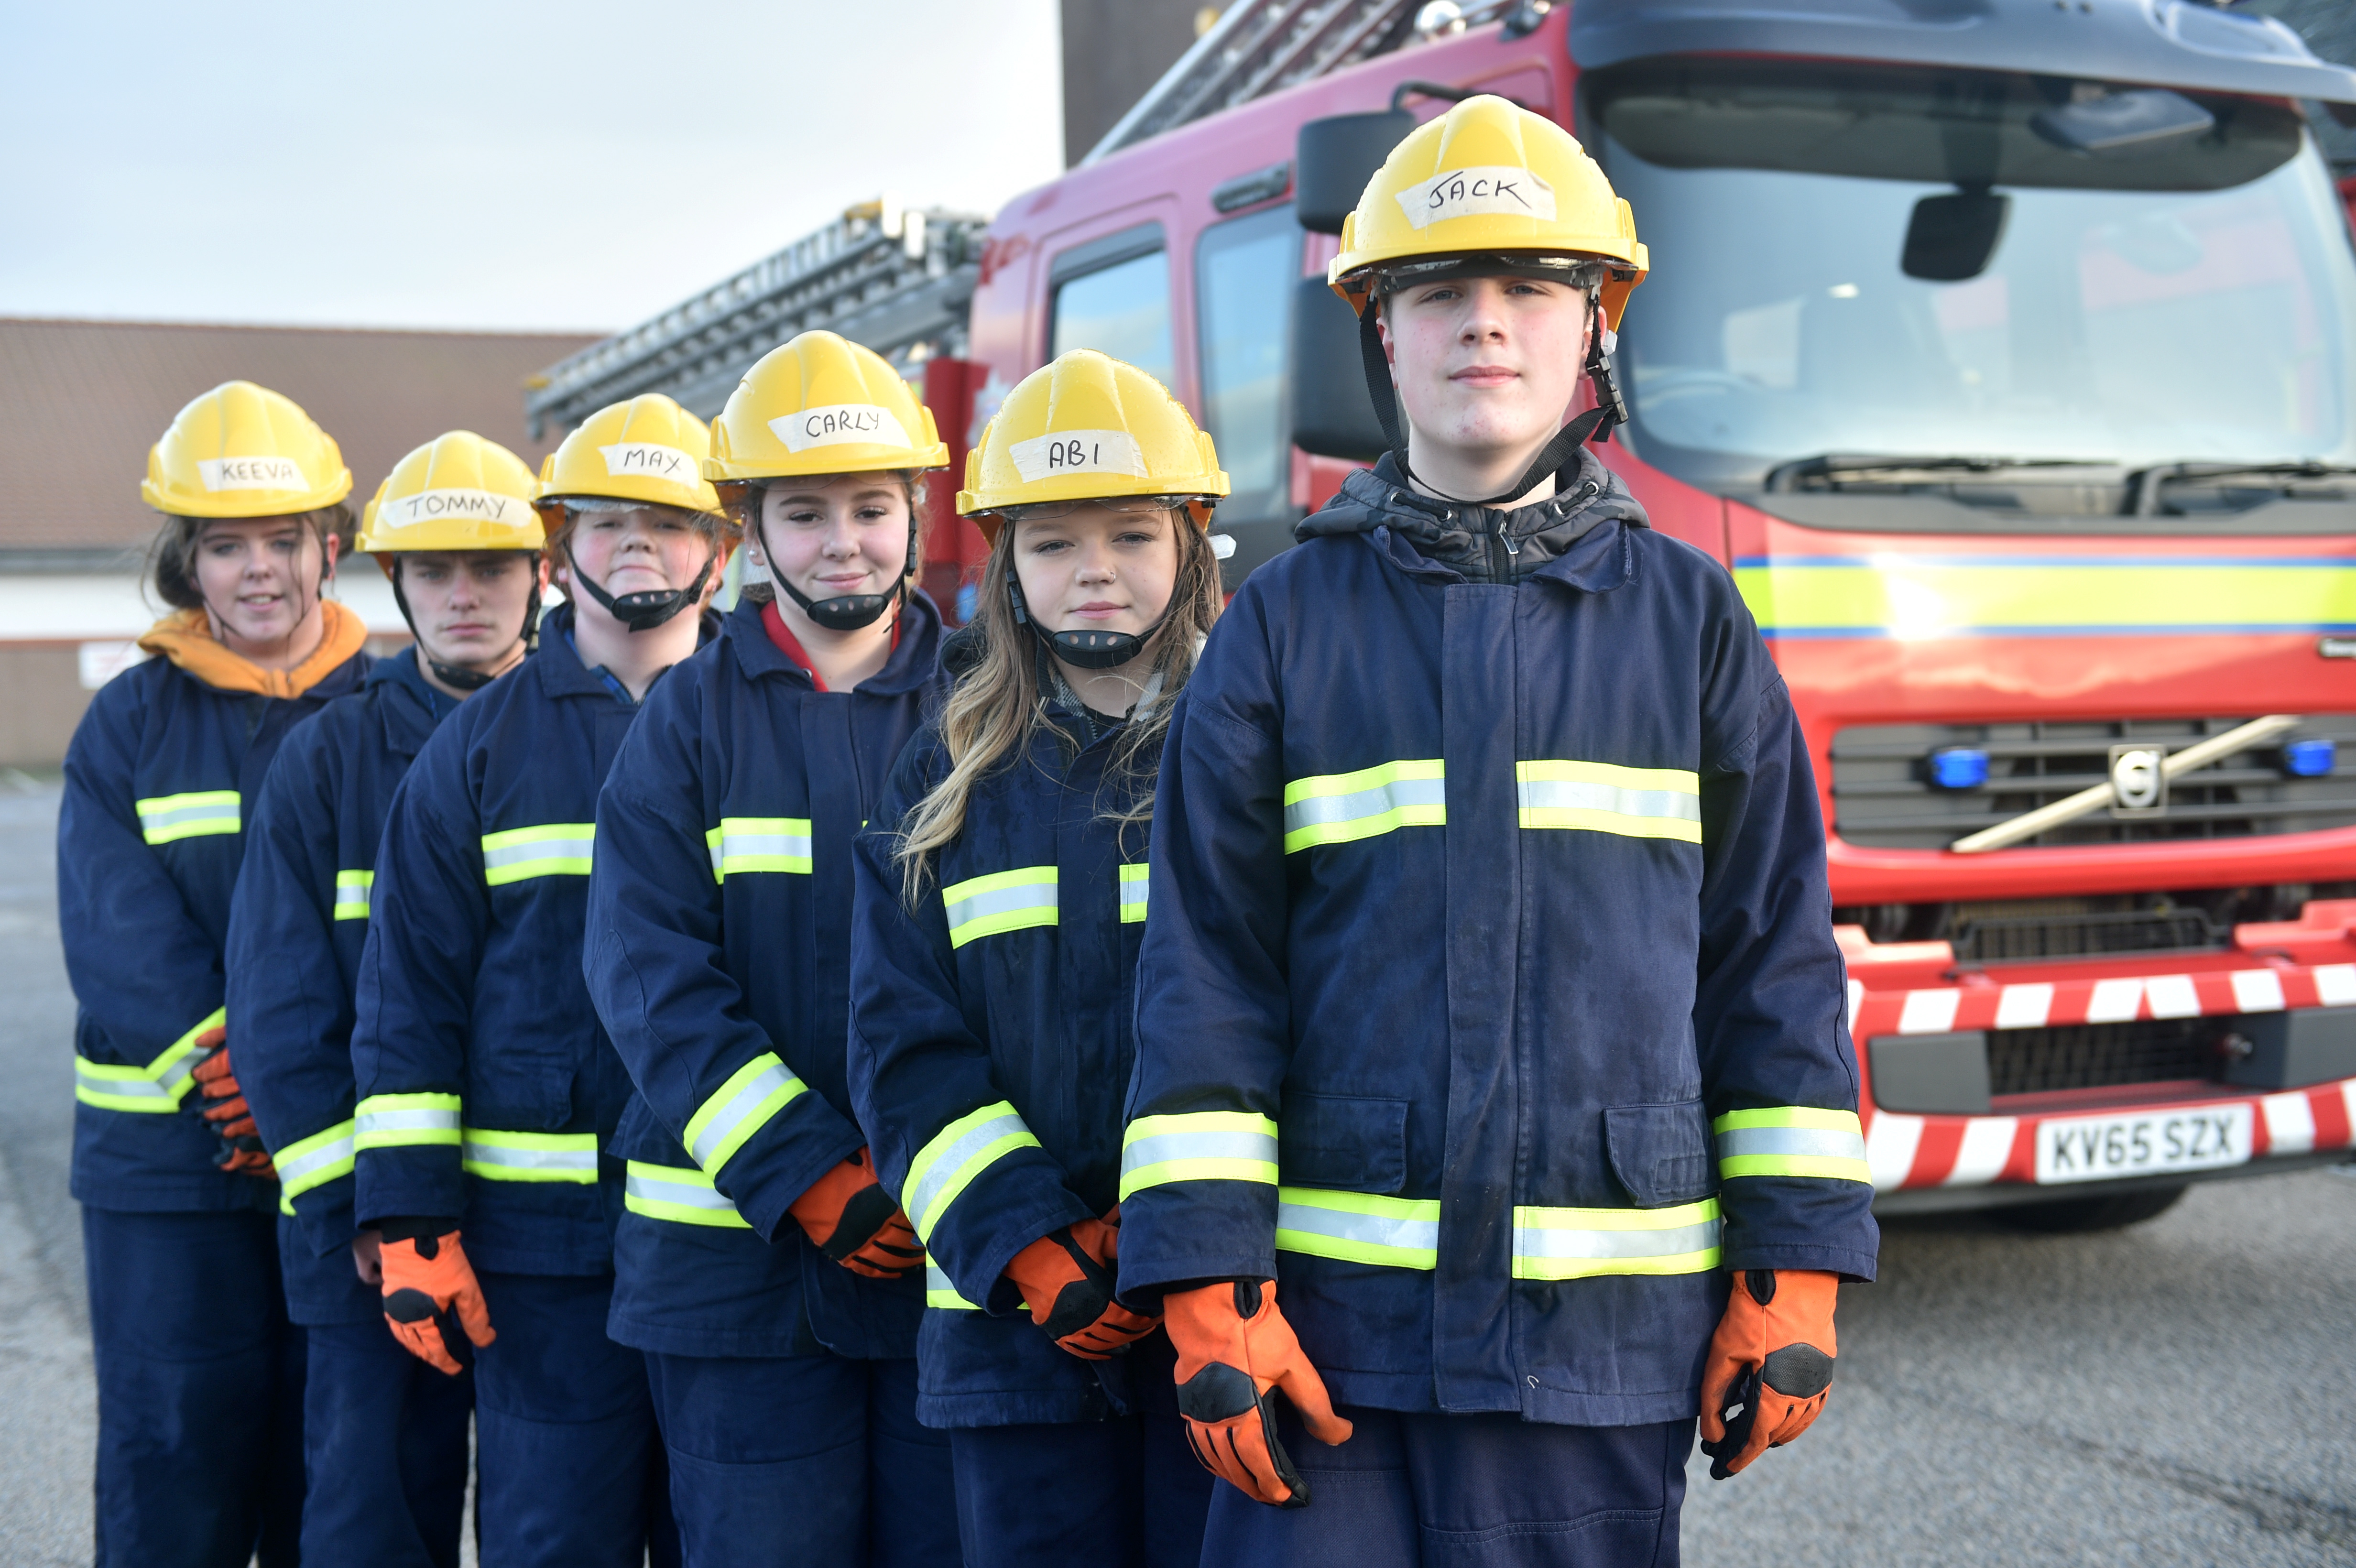 Pictured are from left, Keeva Mutch, 14, Tommy Lee Dimmick, 15, Max Walker, 14, Carly Slessor, 14, Abigail Duncan, 14 and Jack Mair, 14 at Peterhead Fire Station. The Fraser-deen group will be doing their passing out parade at Peterhead Fire Station having completed their skills course as part of the Fraserdeen project which aims to give participants more life skills than being kept in classrooms. Picture by DARRELL BENNS  Pictured on 12/12/2019